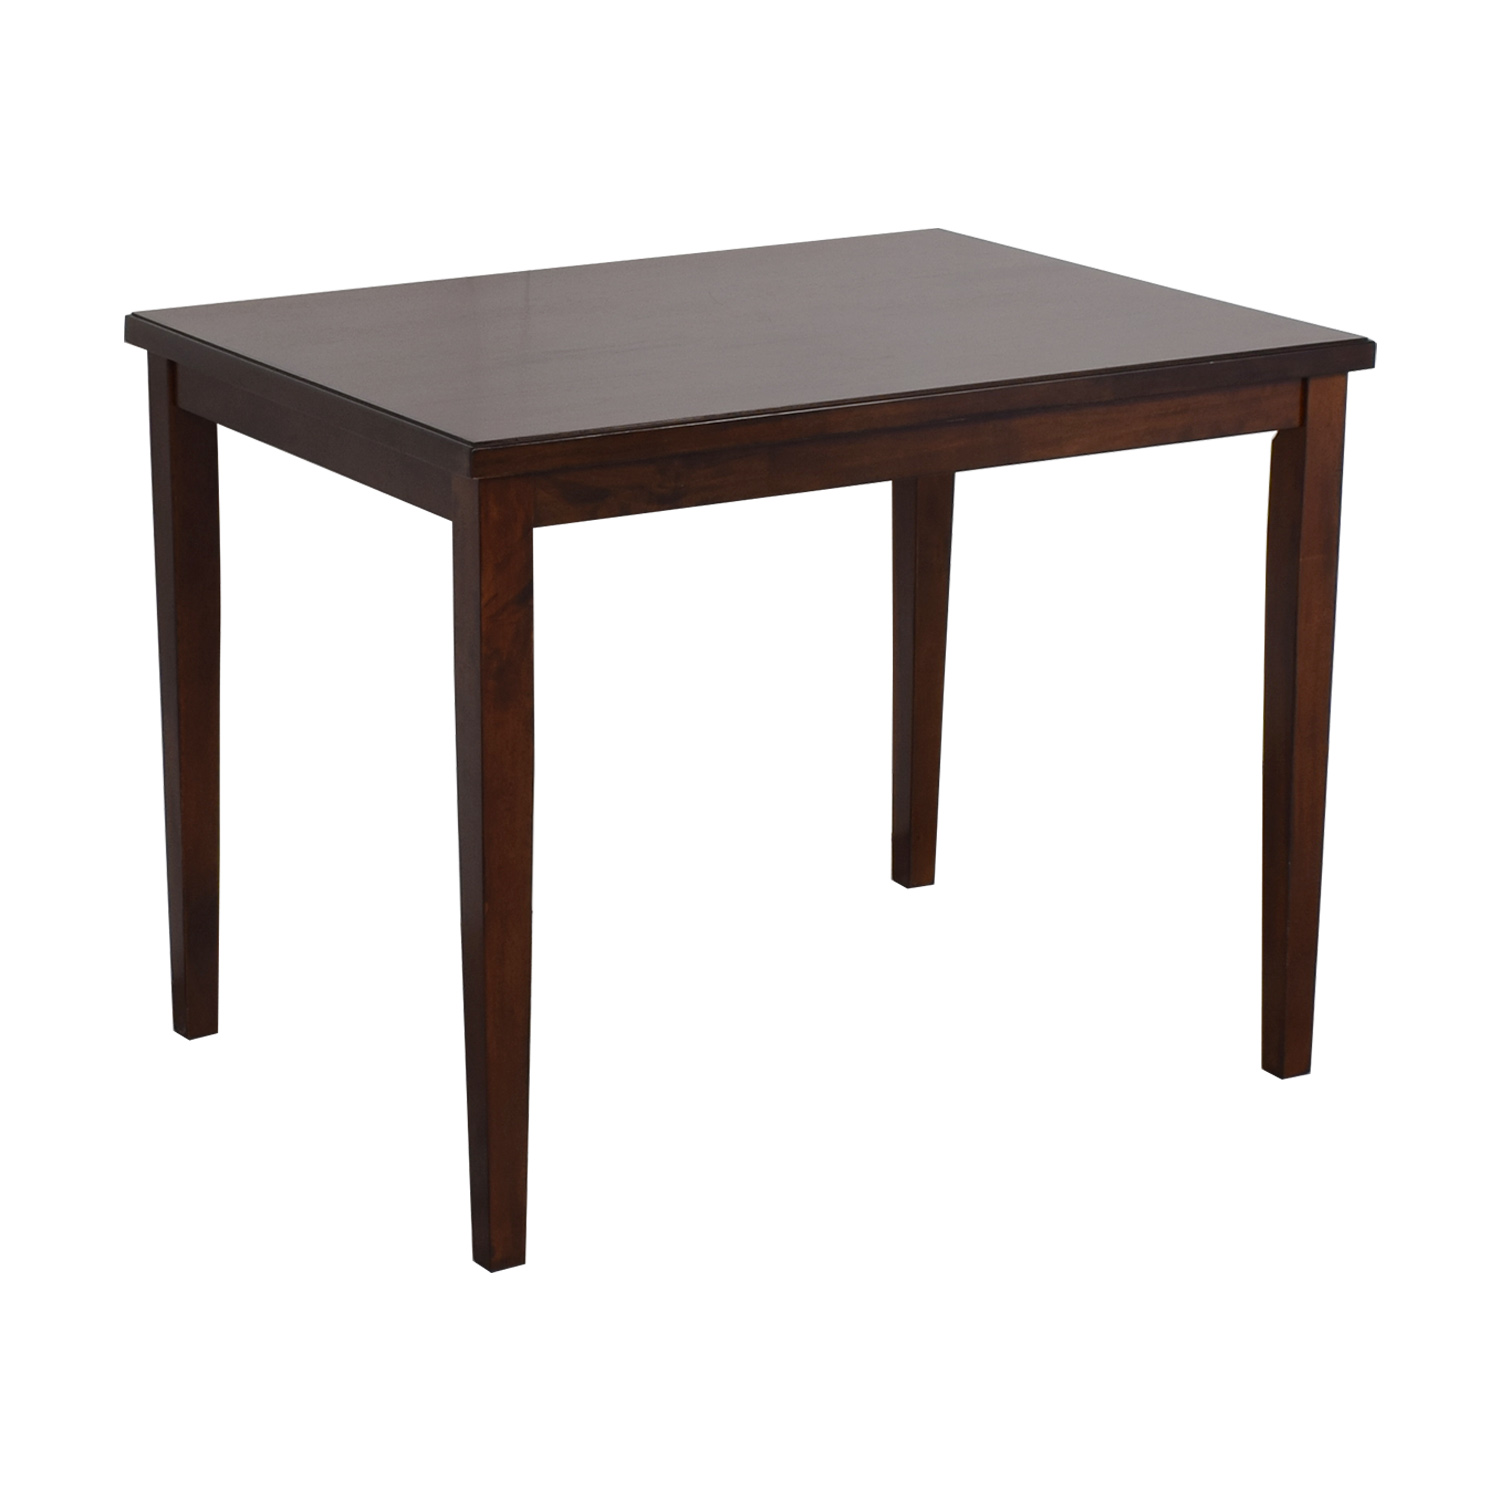 A-America Dining Table A-America Wood Furniture